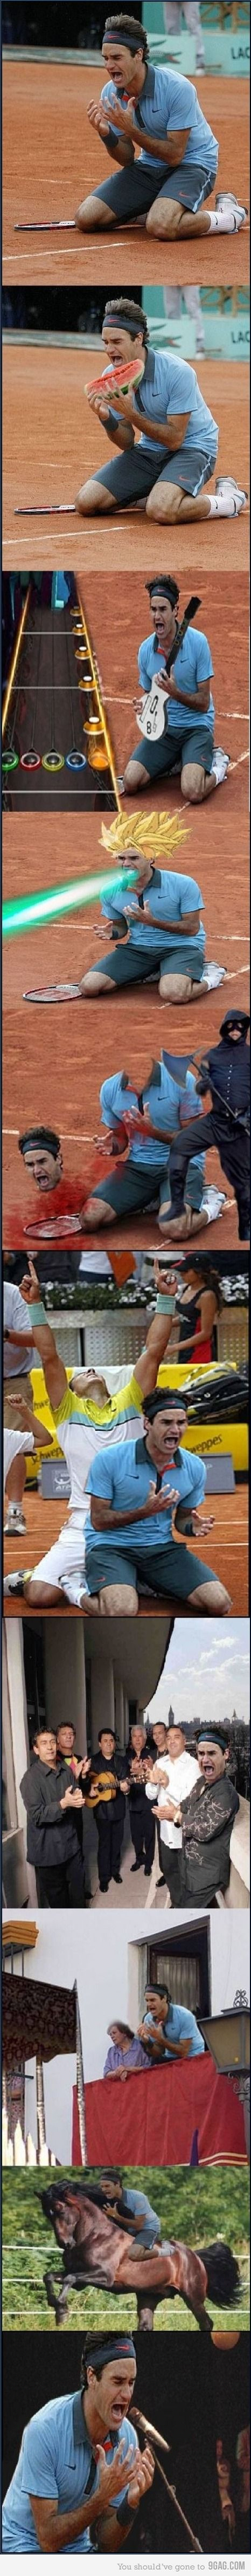 Funny, this Federer dude.